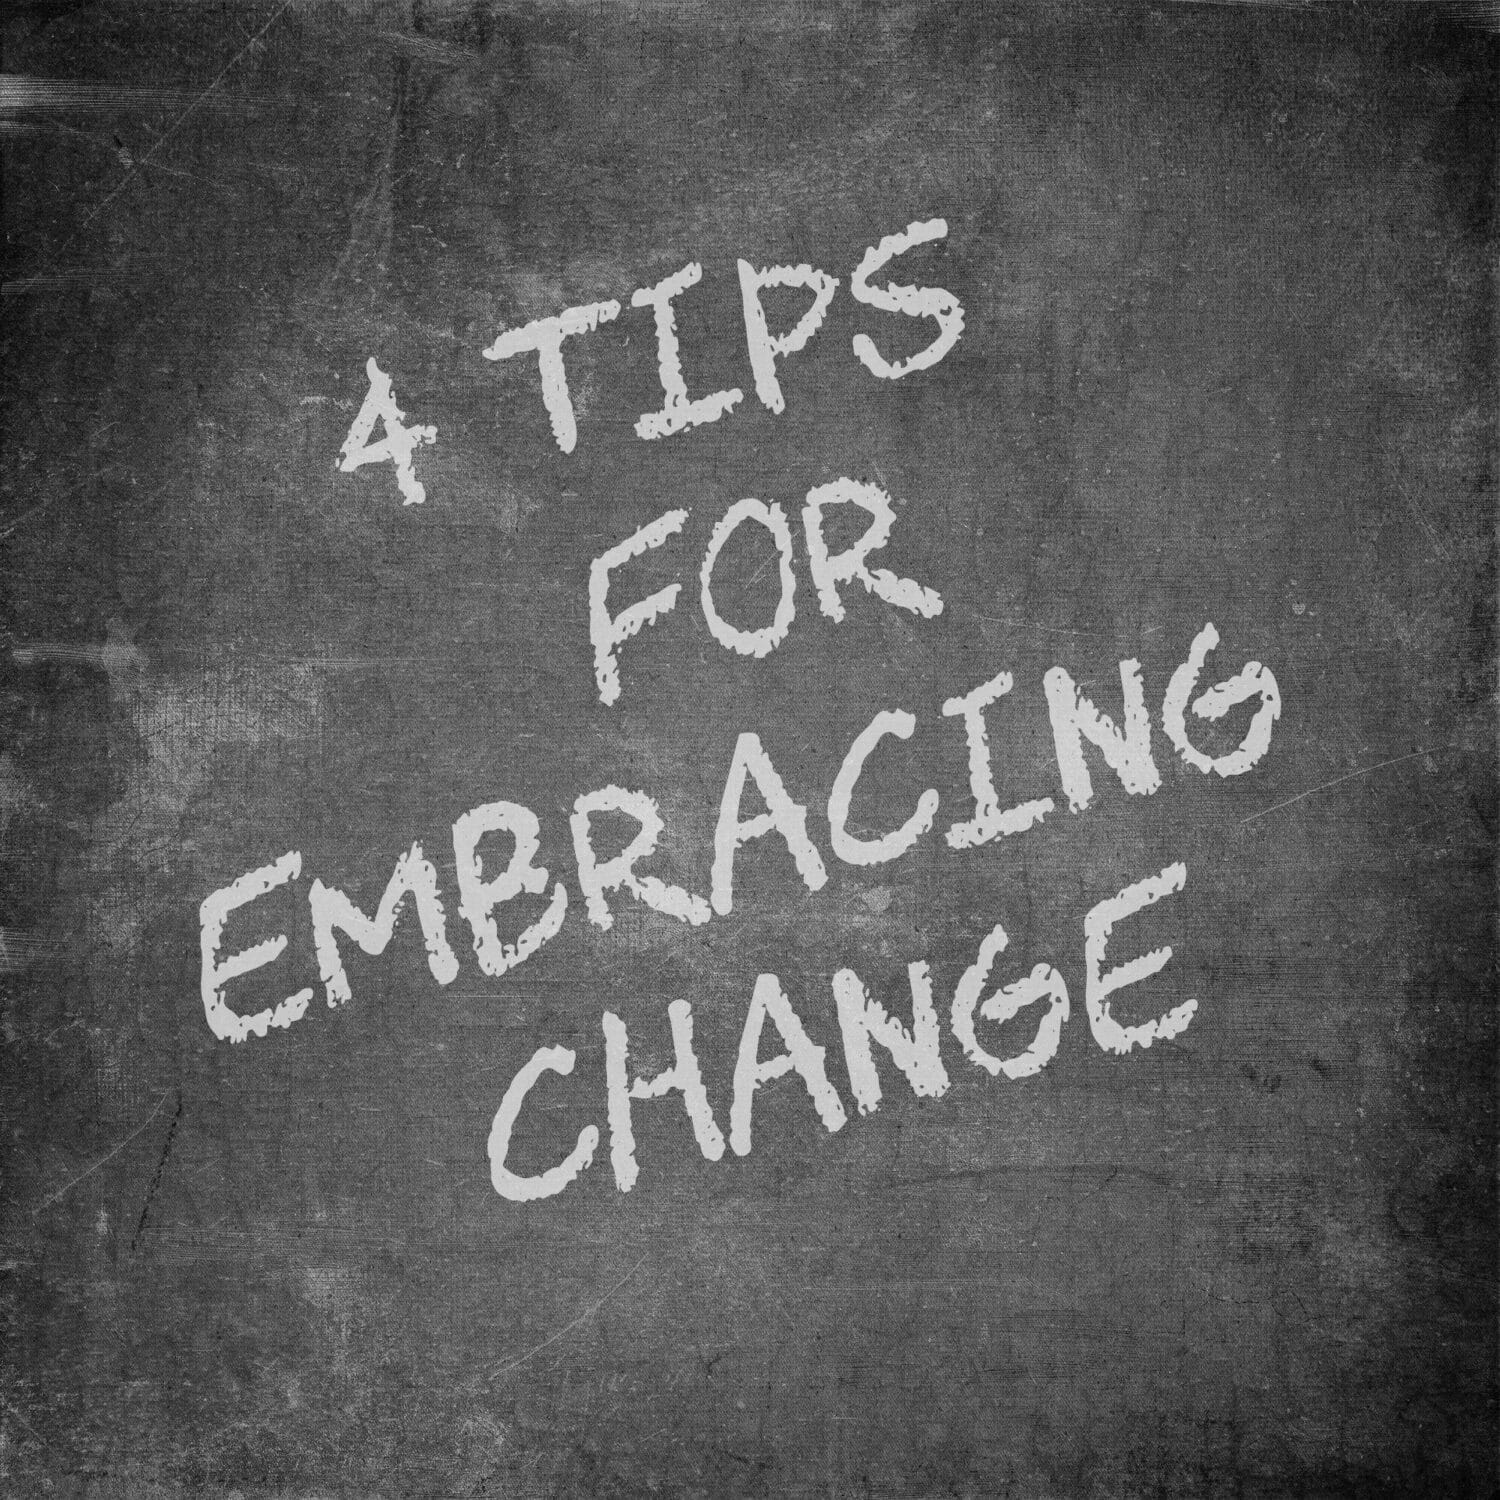 4 Tips for Embracing Change